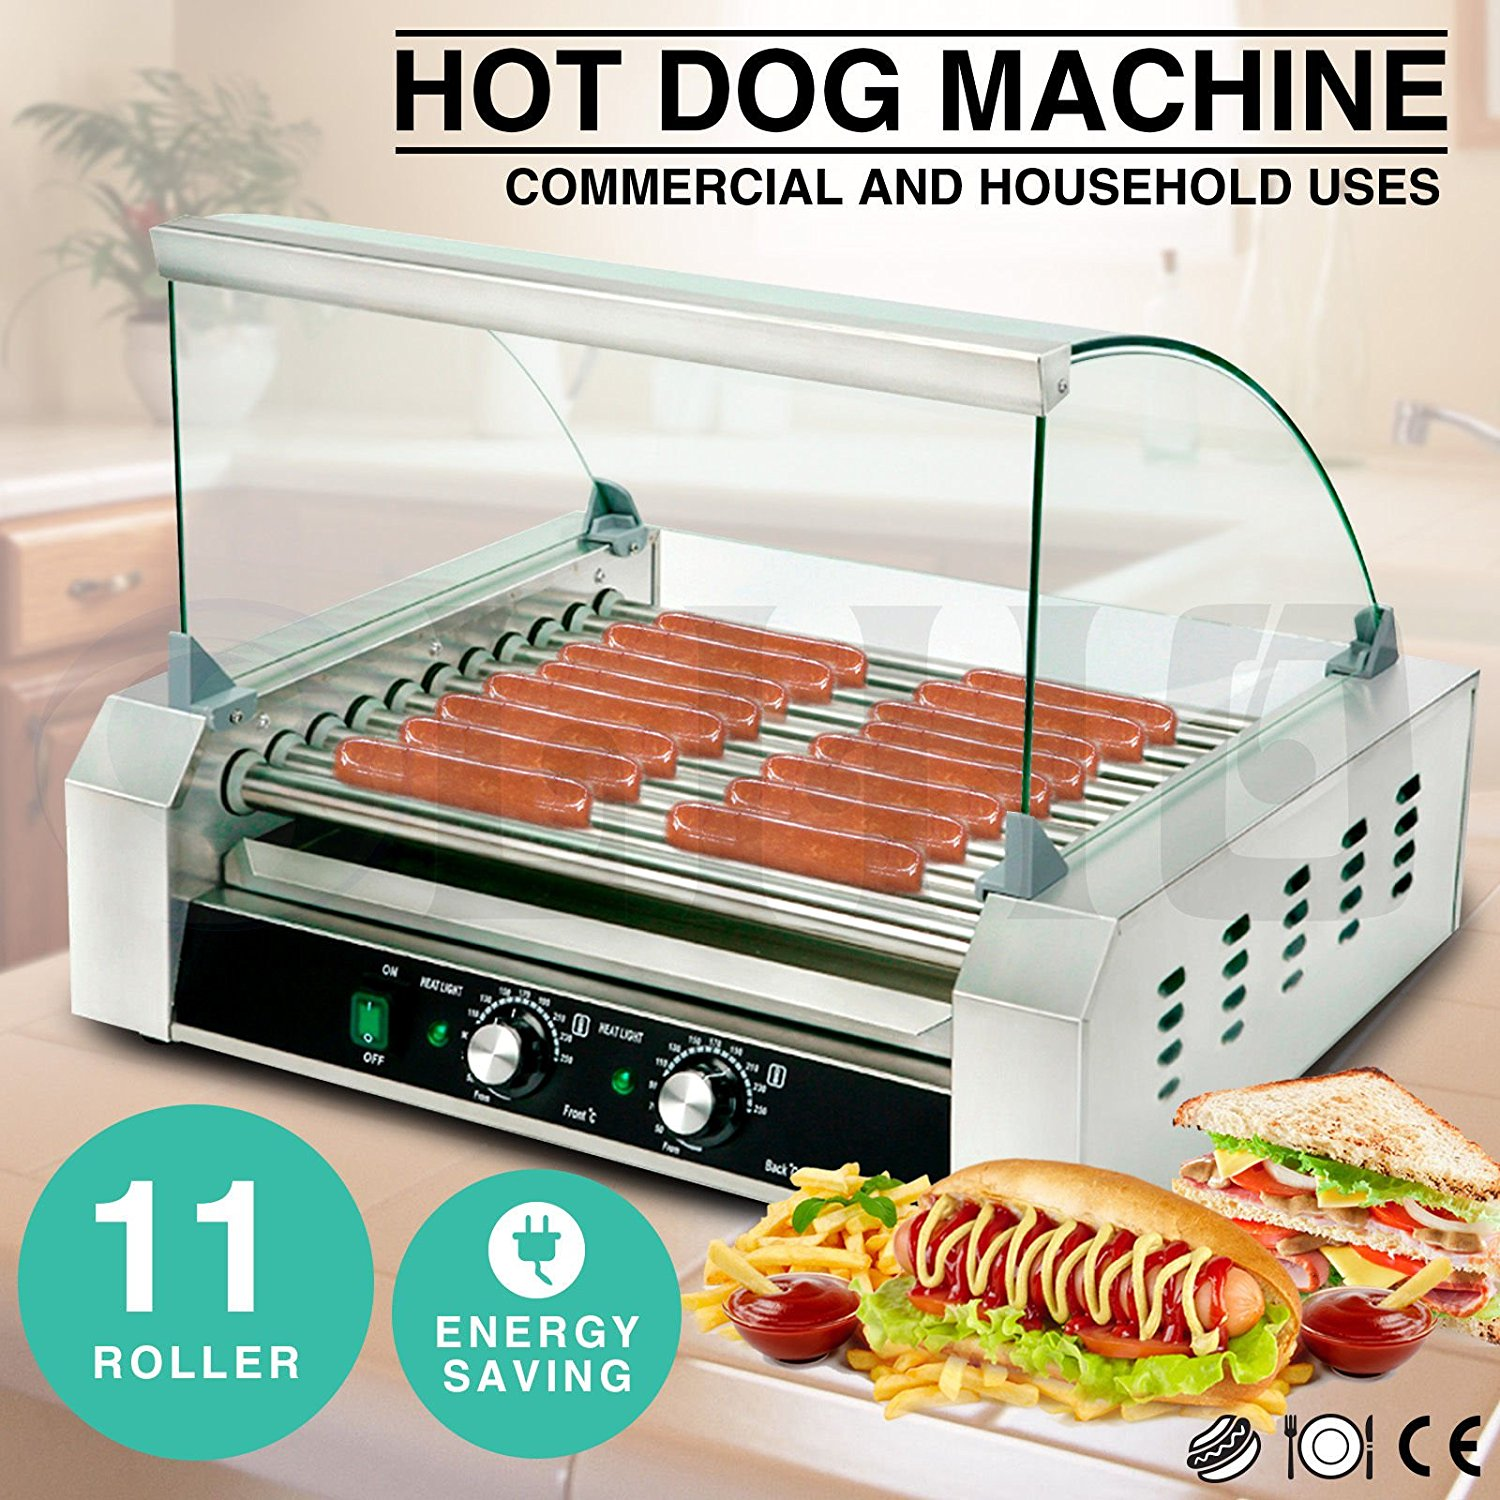 Commercial Hotdog Roller 11 Roller Grill Hot Dog Cooker Machine